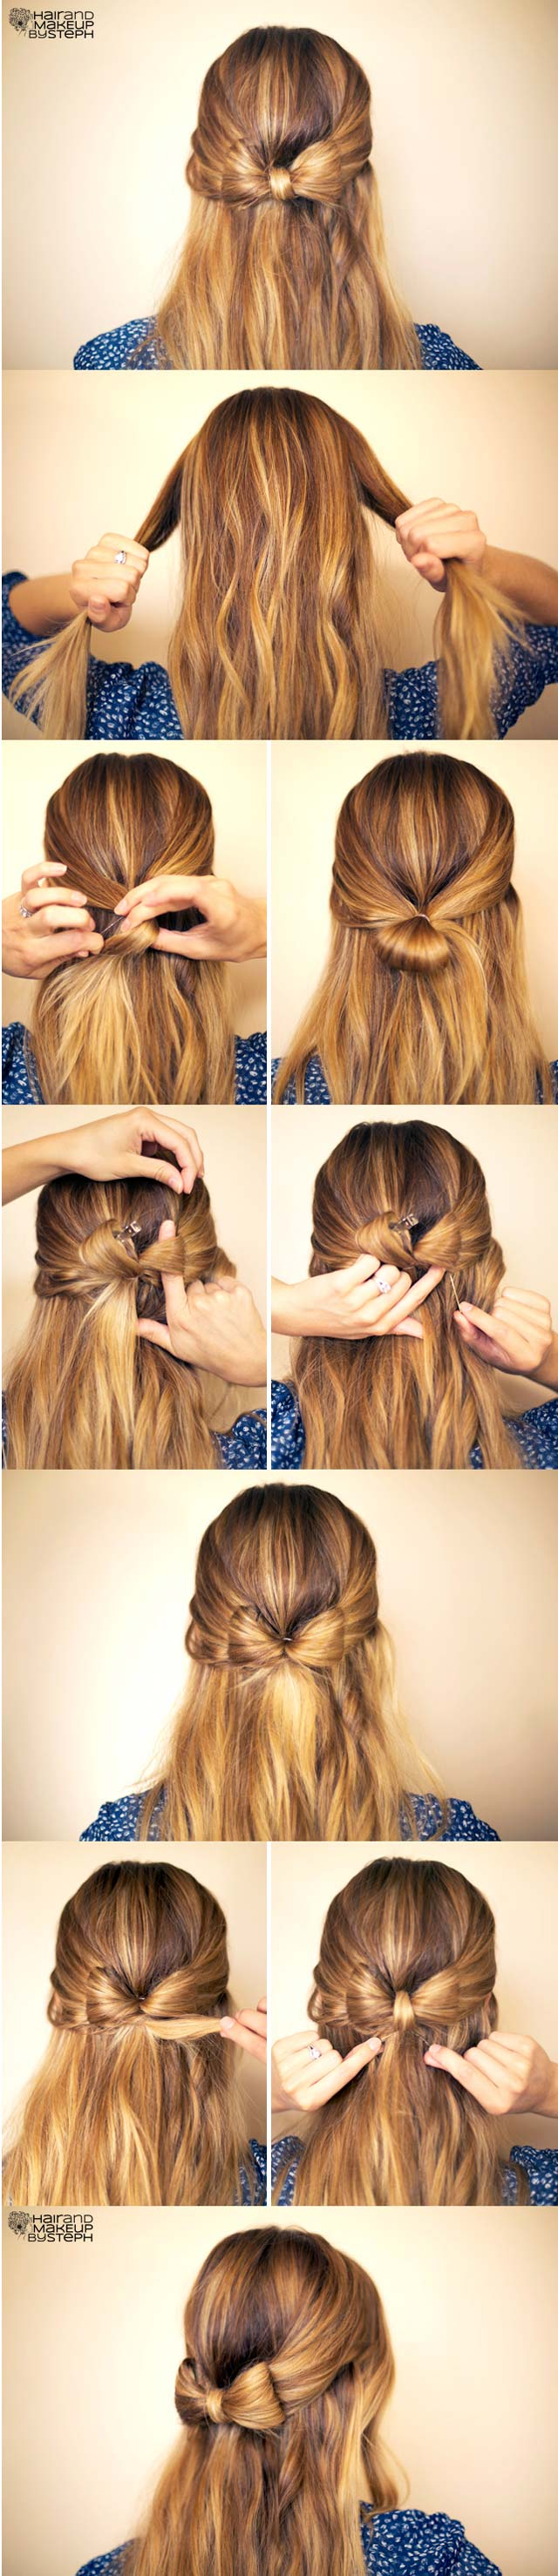 quick and easy hairstyles to do yourself DIY  Your Step by Step for the Best Cute Hairstyles   Fashion Diva